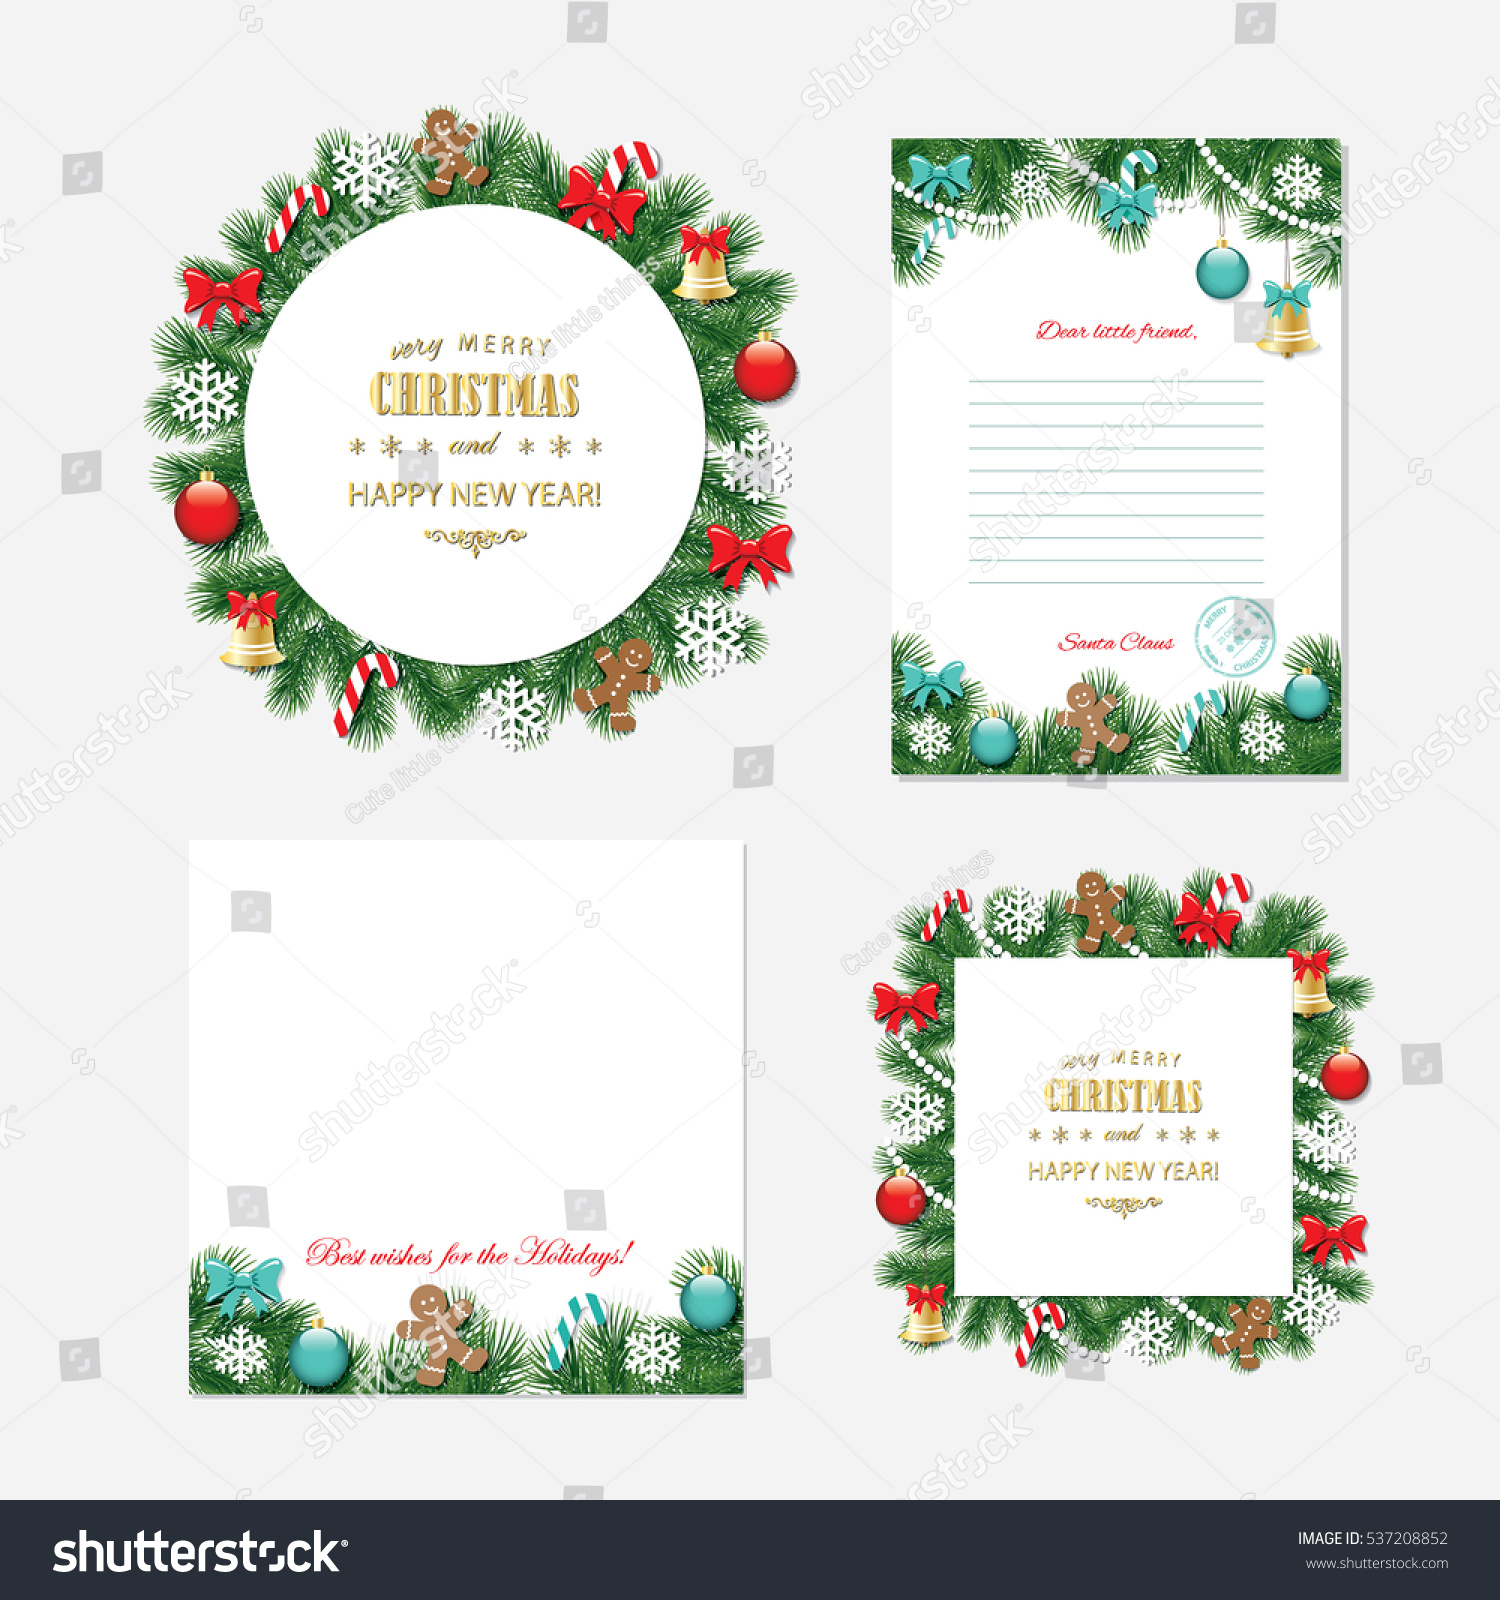 Christmas New Year Templates Santa Claus Stock Vector Royalty Free